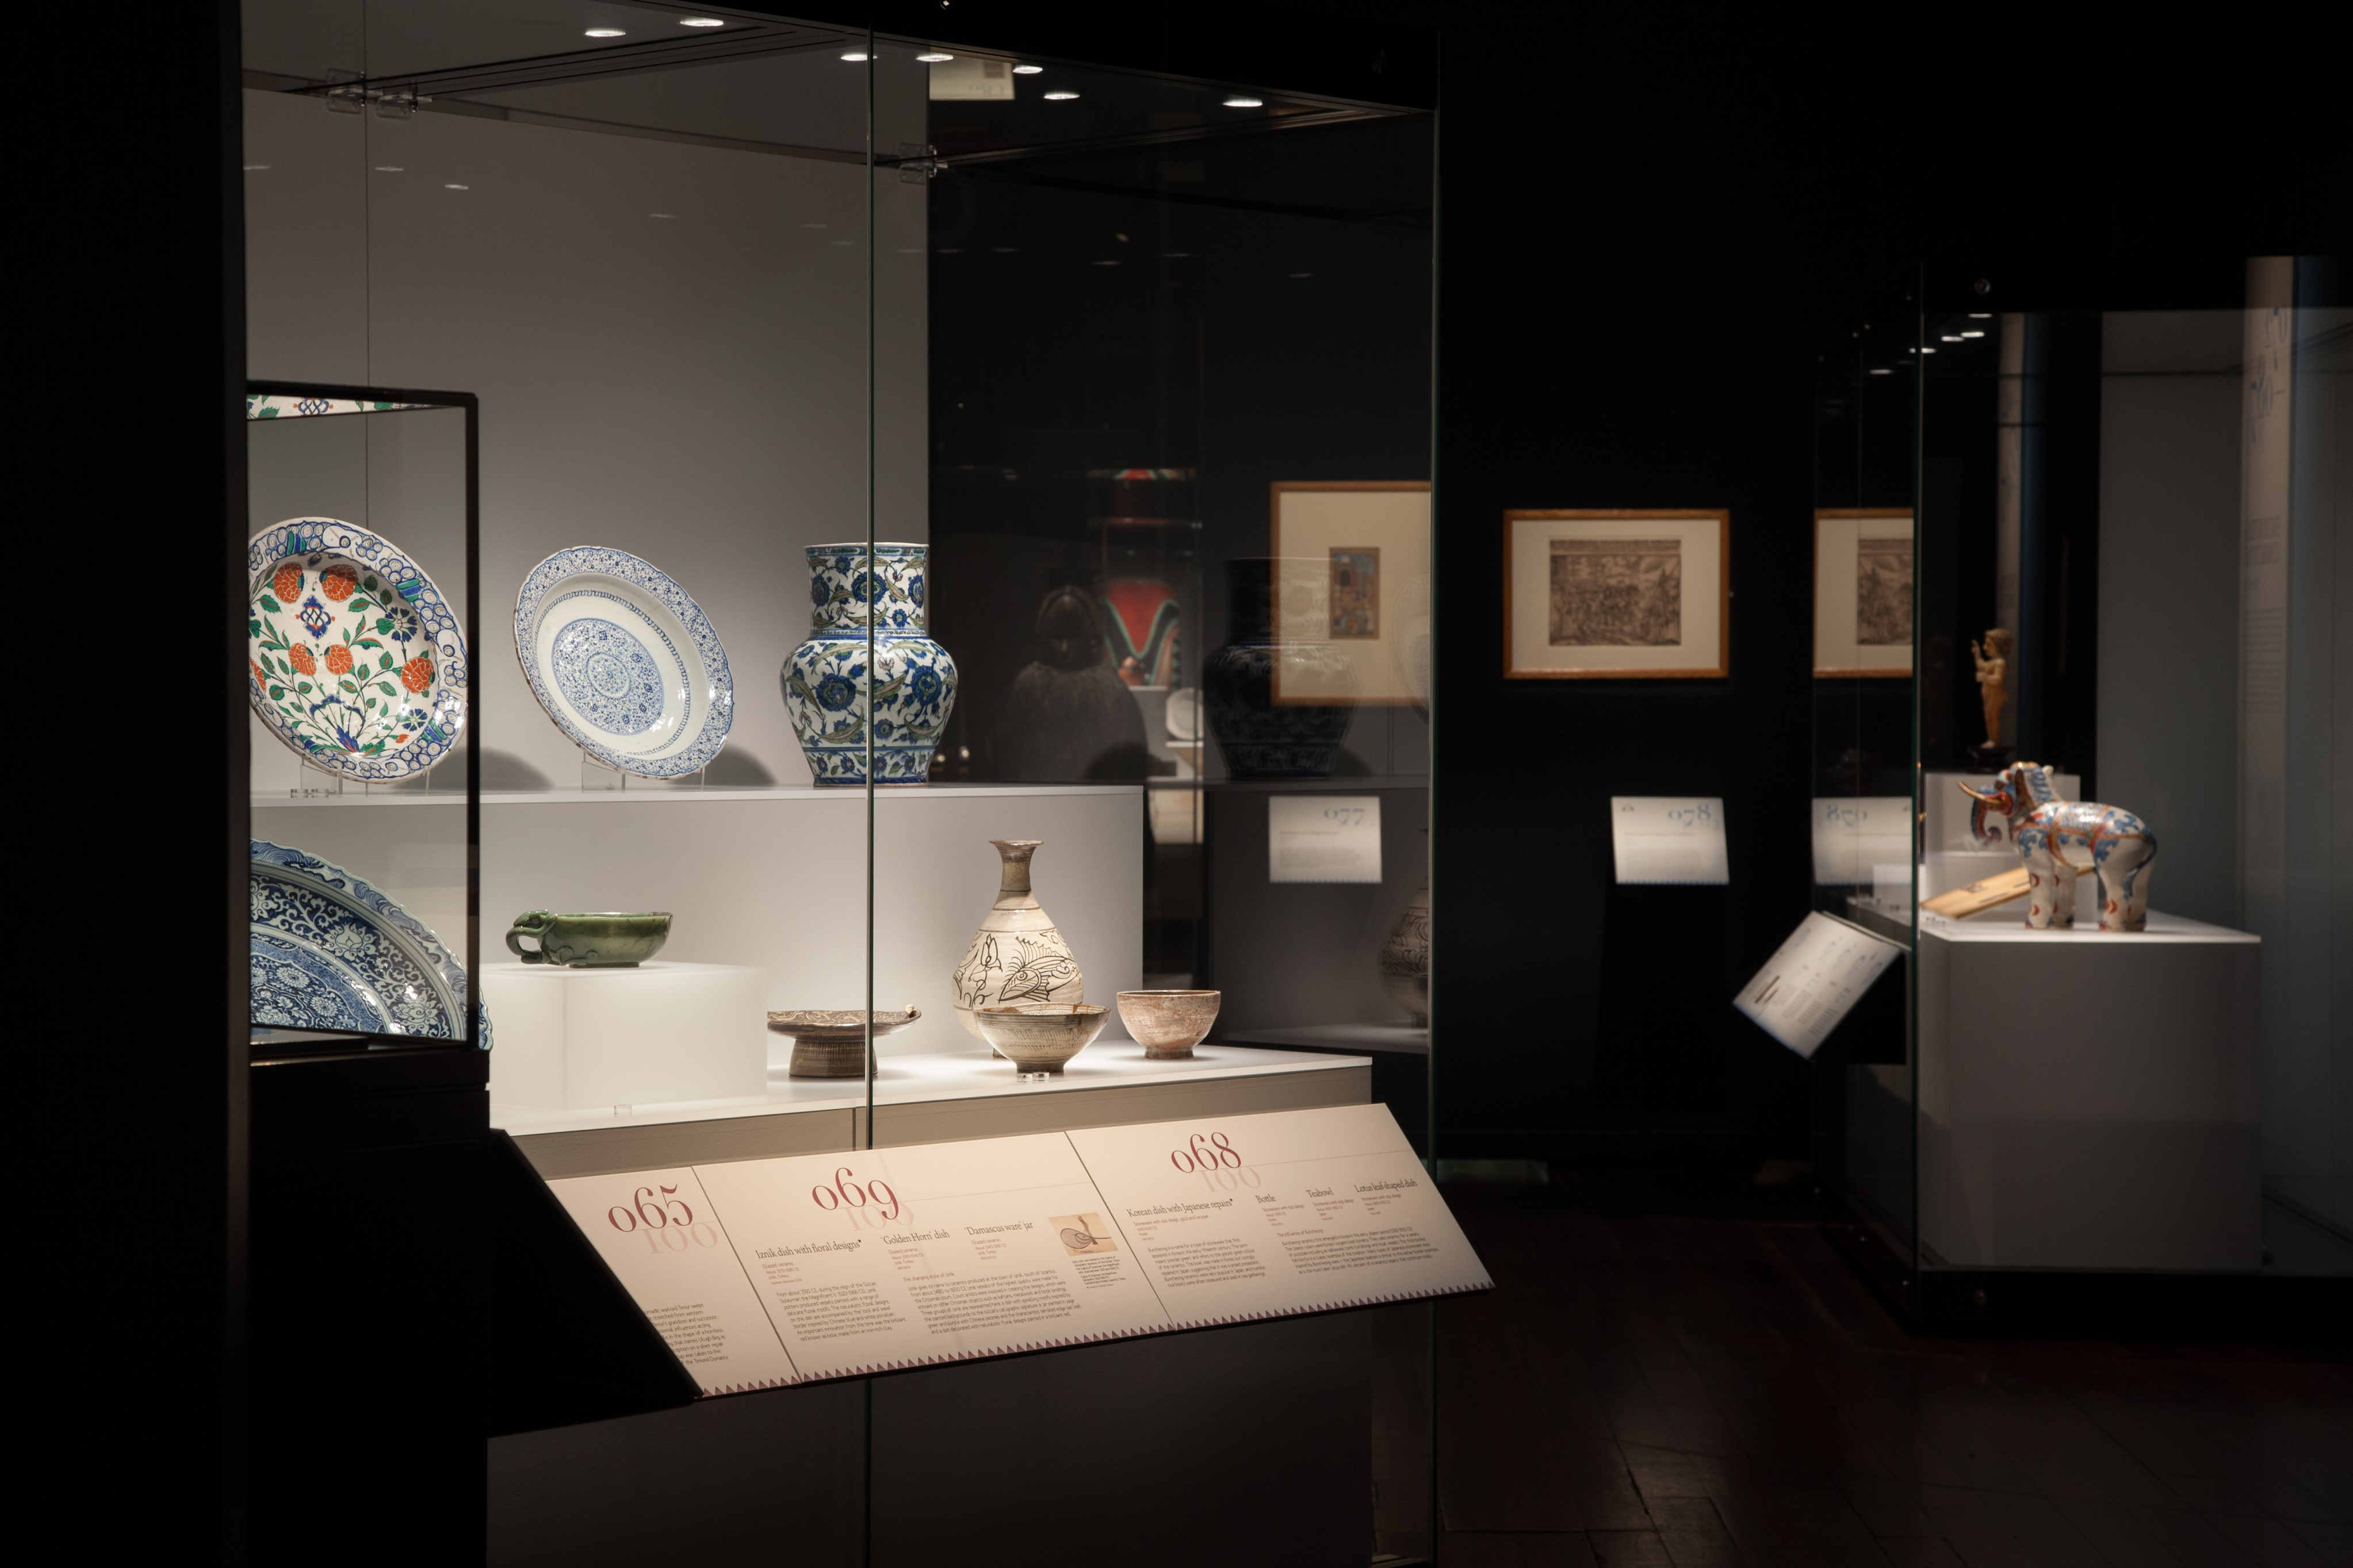 Soraa's LED lamps have been installed at the Western Australian Museum in Perth, Western Australia. (Photo: Business Wire)